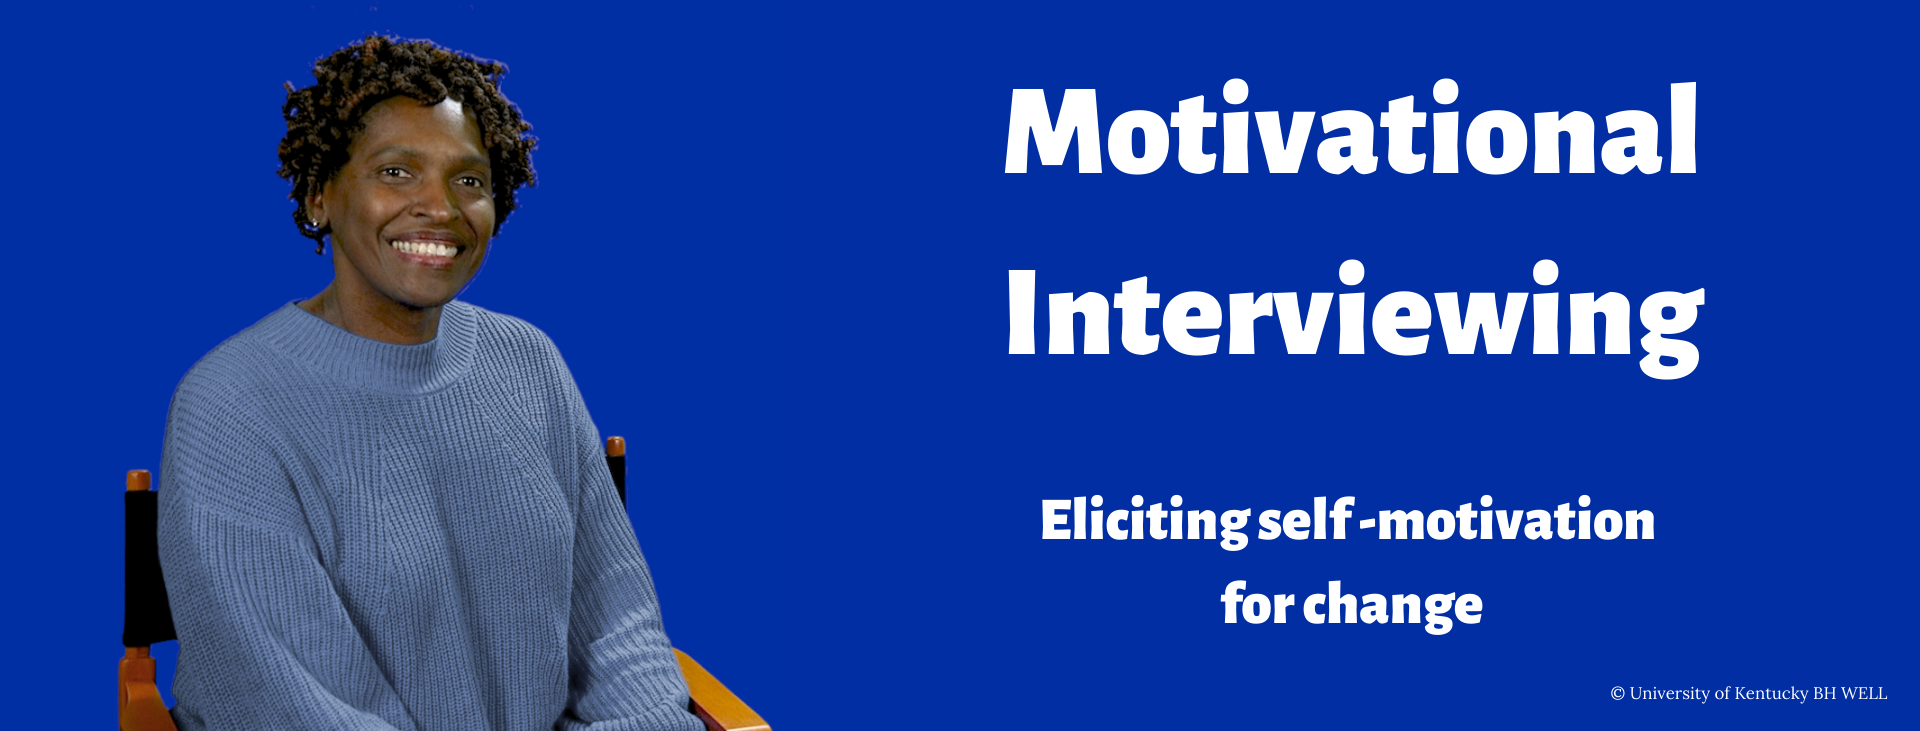 Motivational Interviewing: eliciting self motivation for change